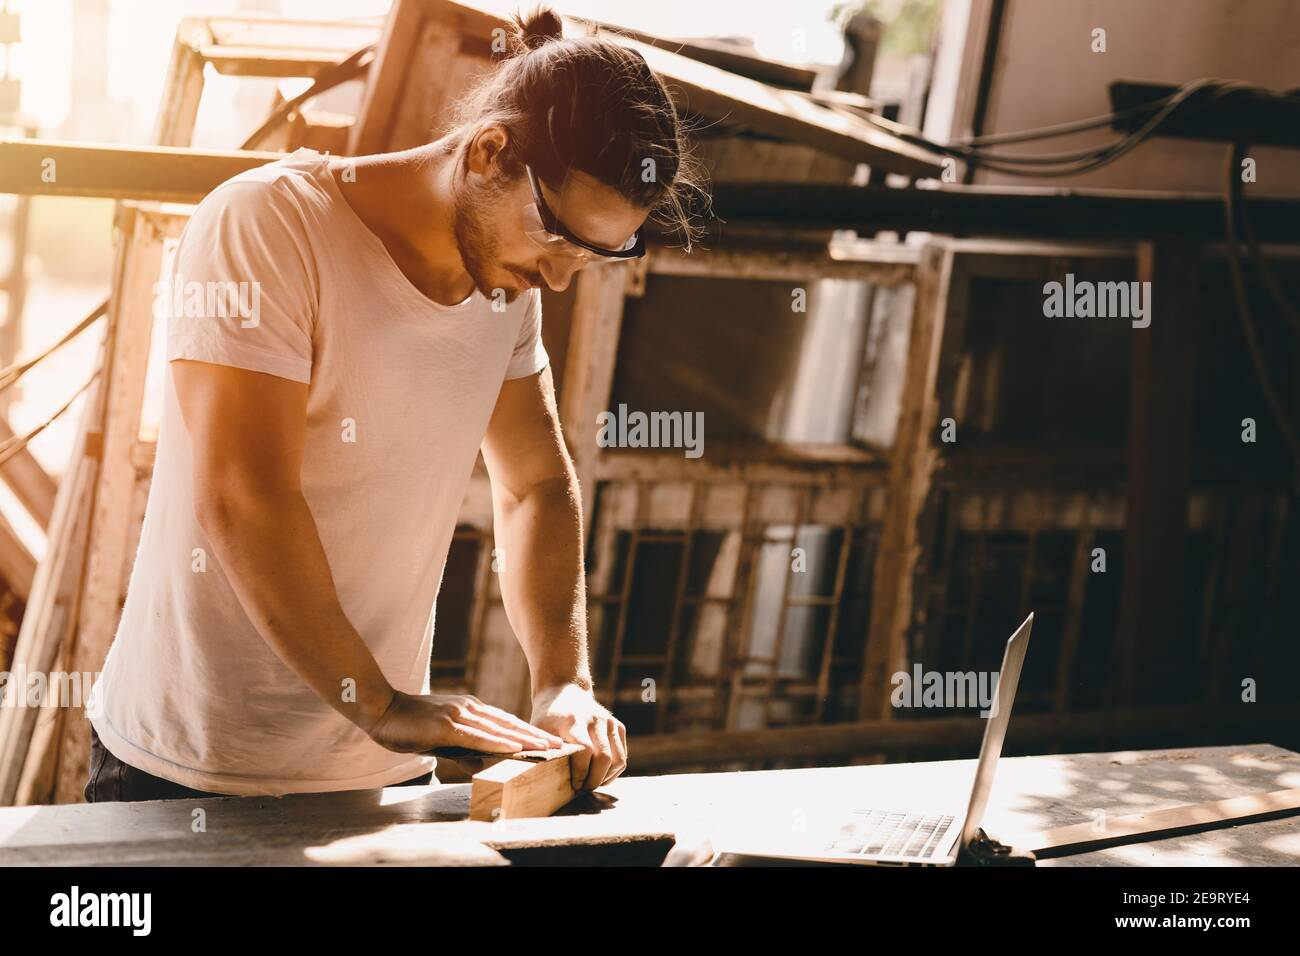 Carpenter man woodcraft working in furniture wood workshop with professional skill real people workman. Stock Photo